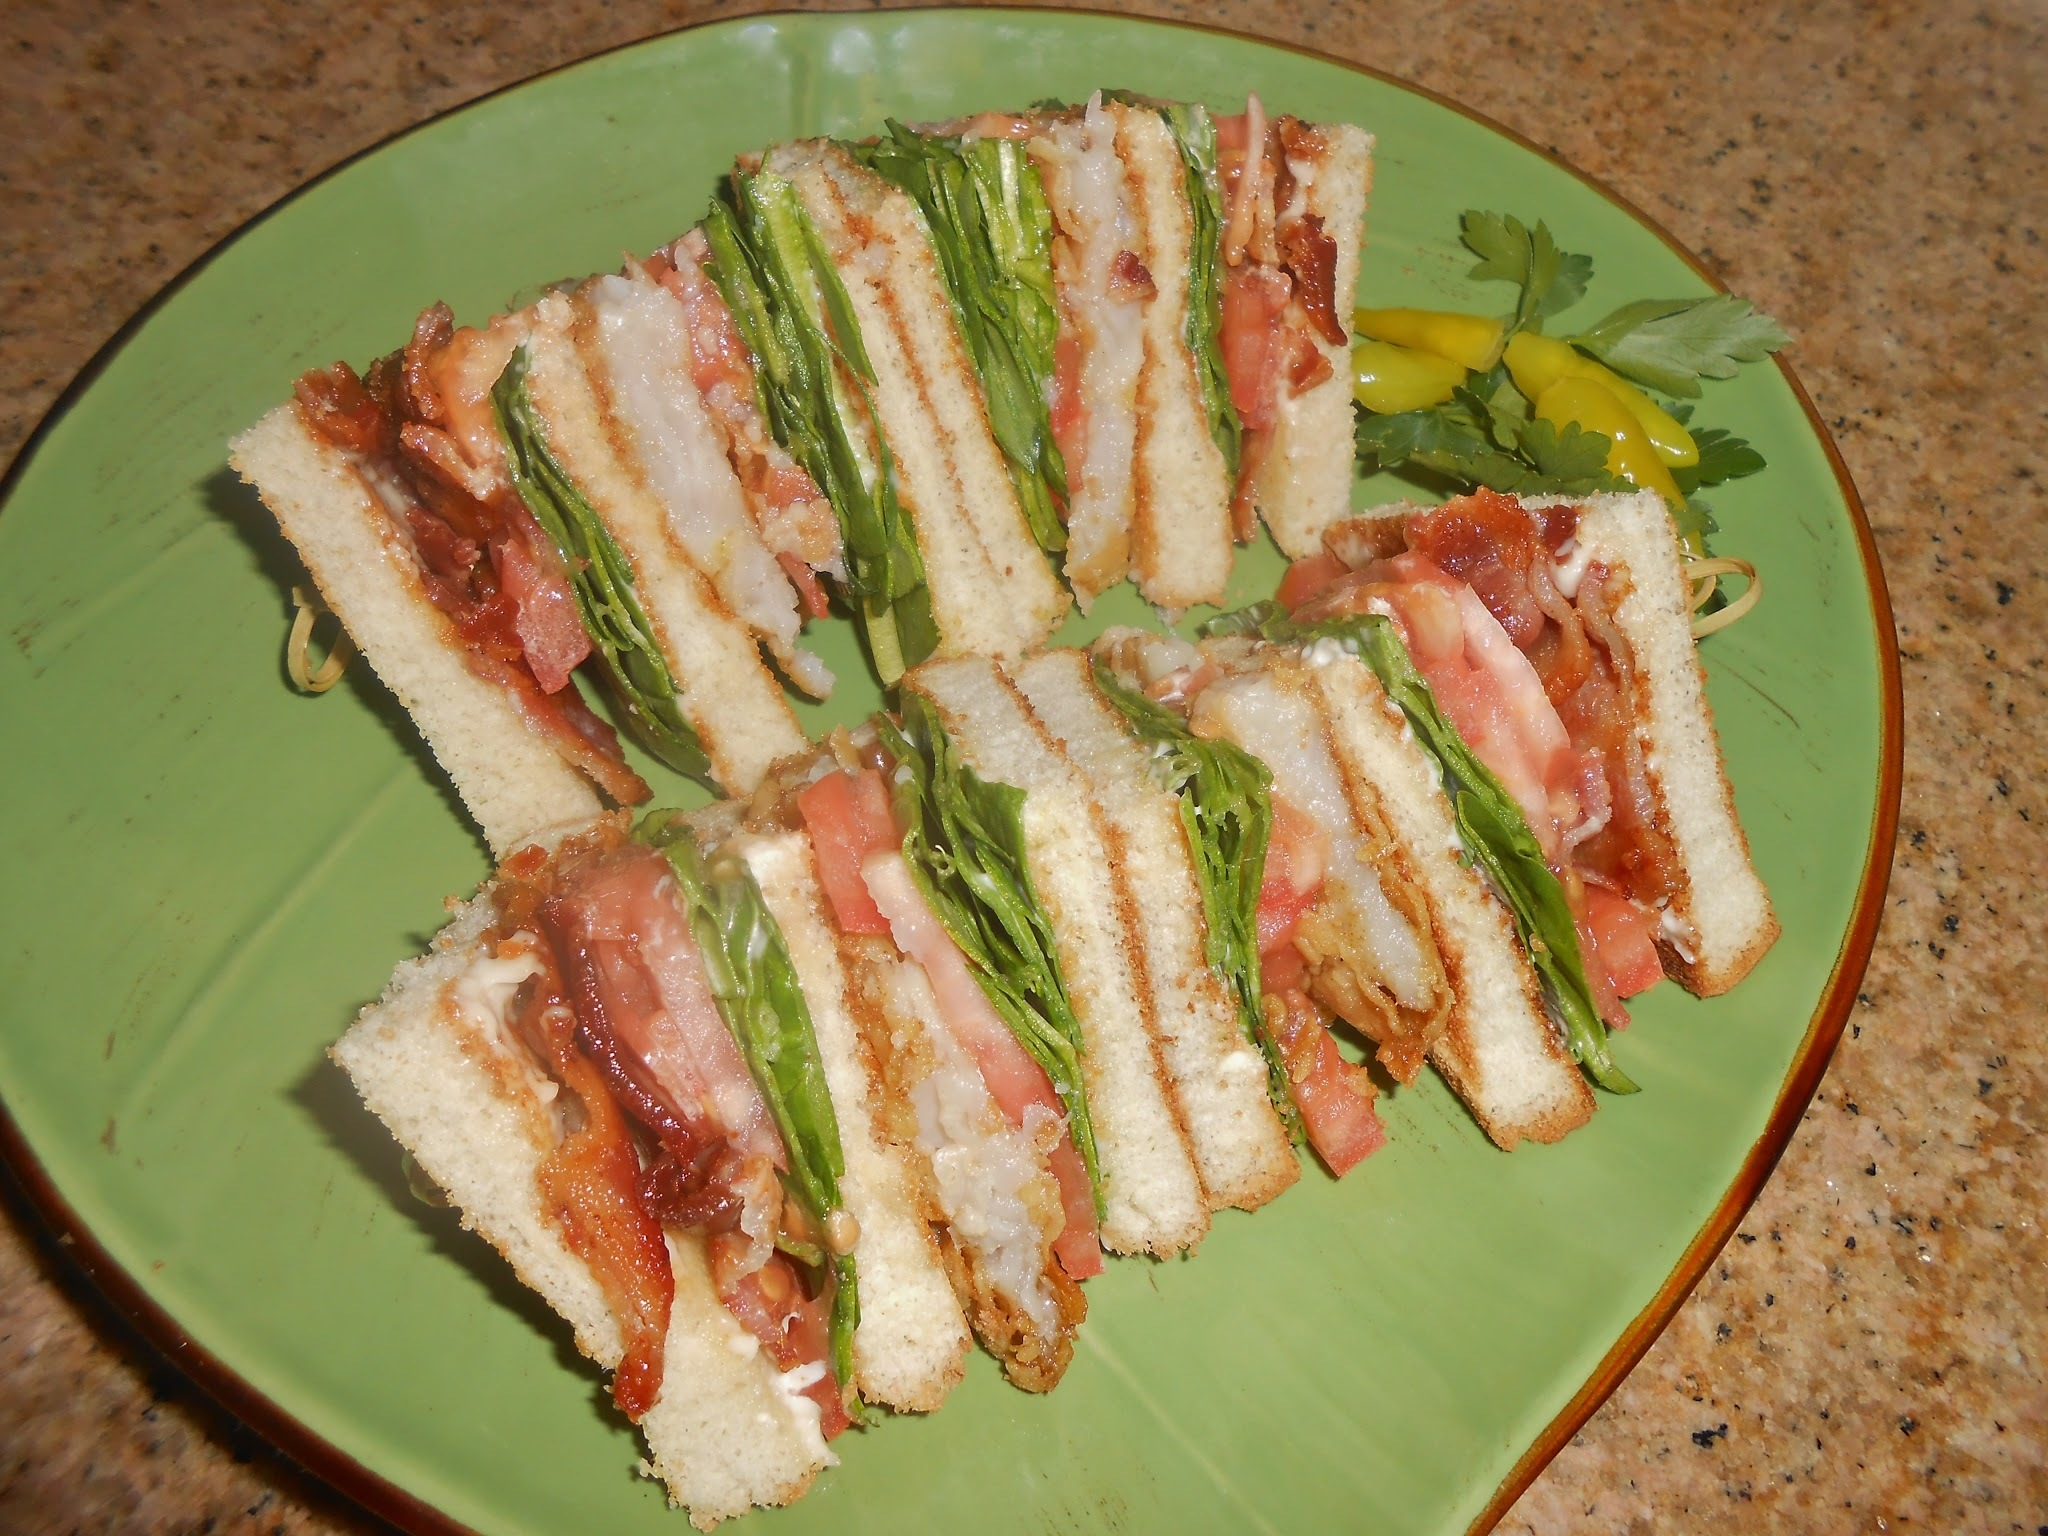 Club Sandwich of Pan Fried Swai, Spinach and Smoked Bacon